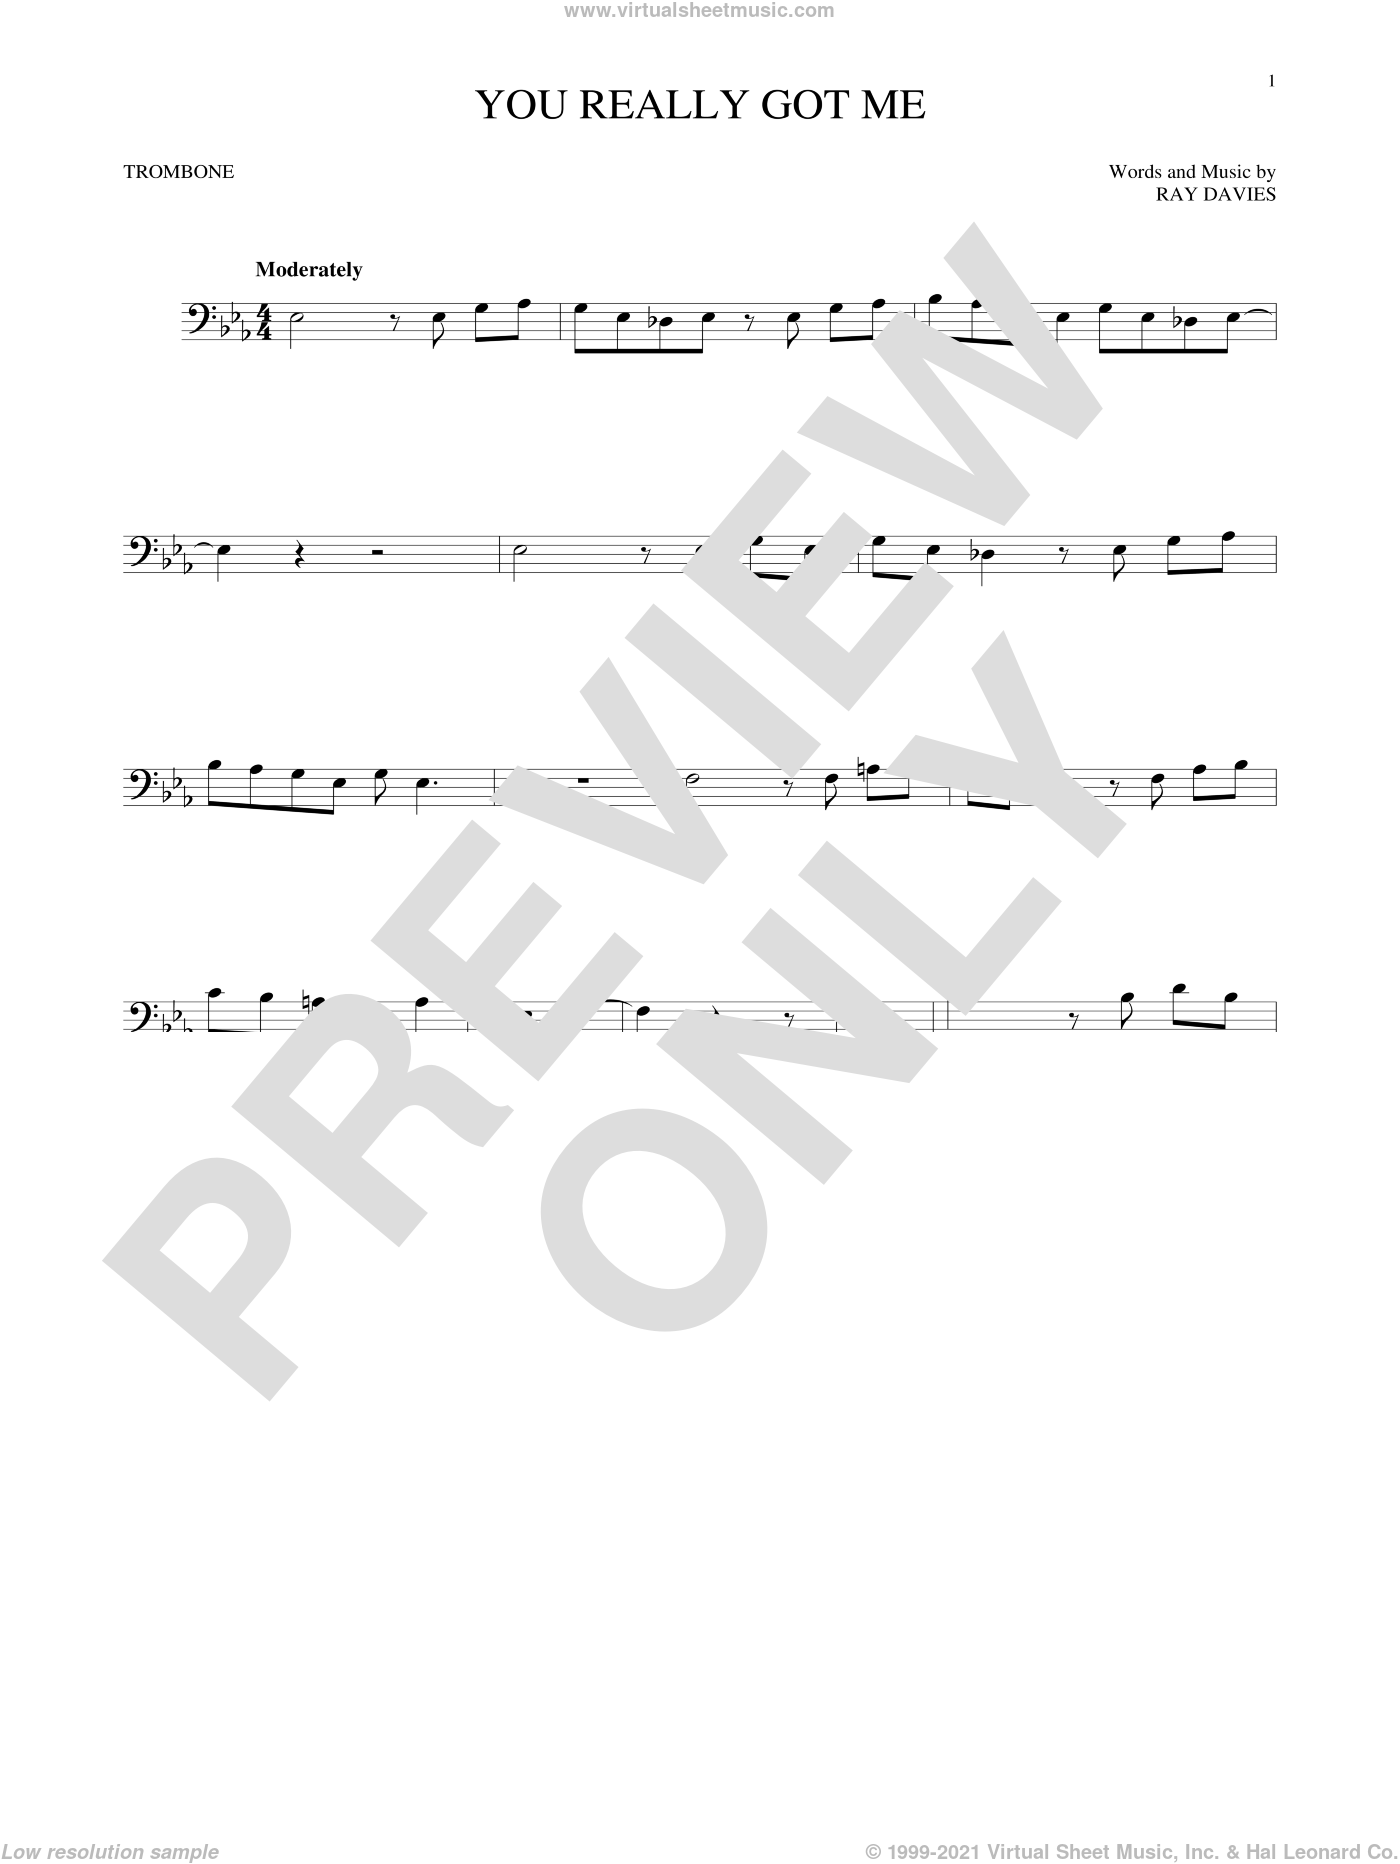 You Really Got Me sheet music for trombone solo by The Kinks, Edward Van Halen and Ray Davies, intermediate. Score Image Preview.